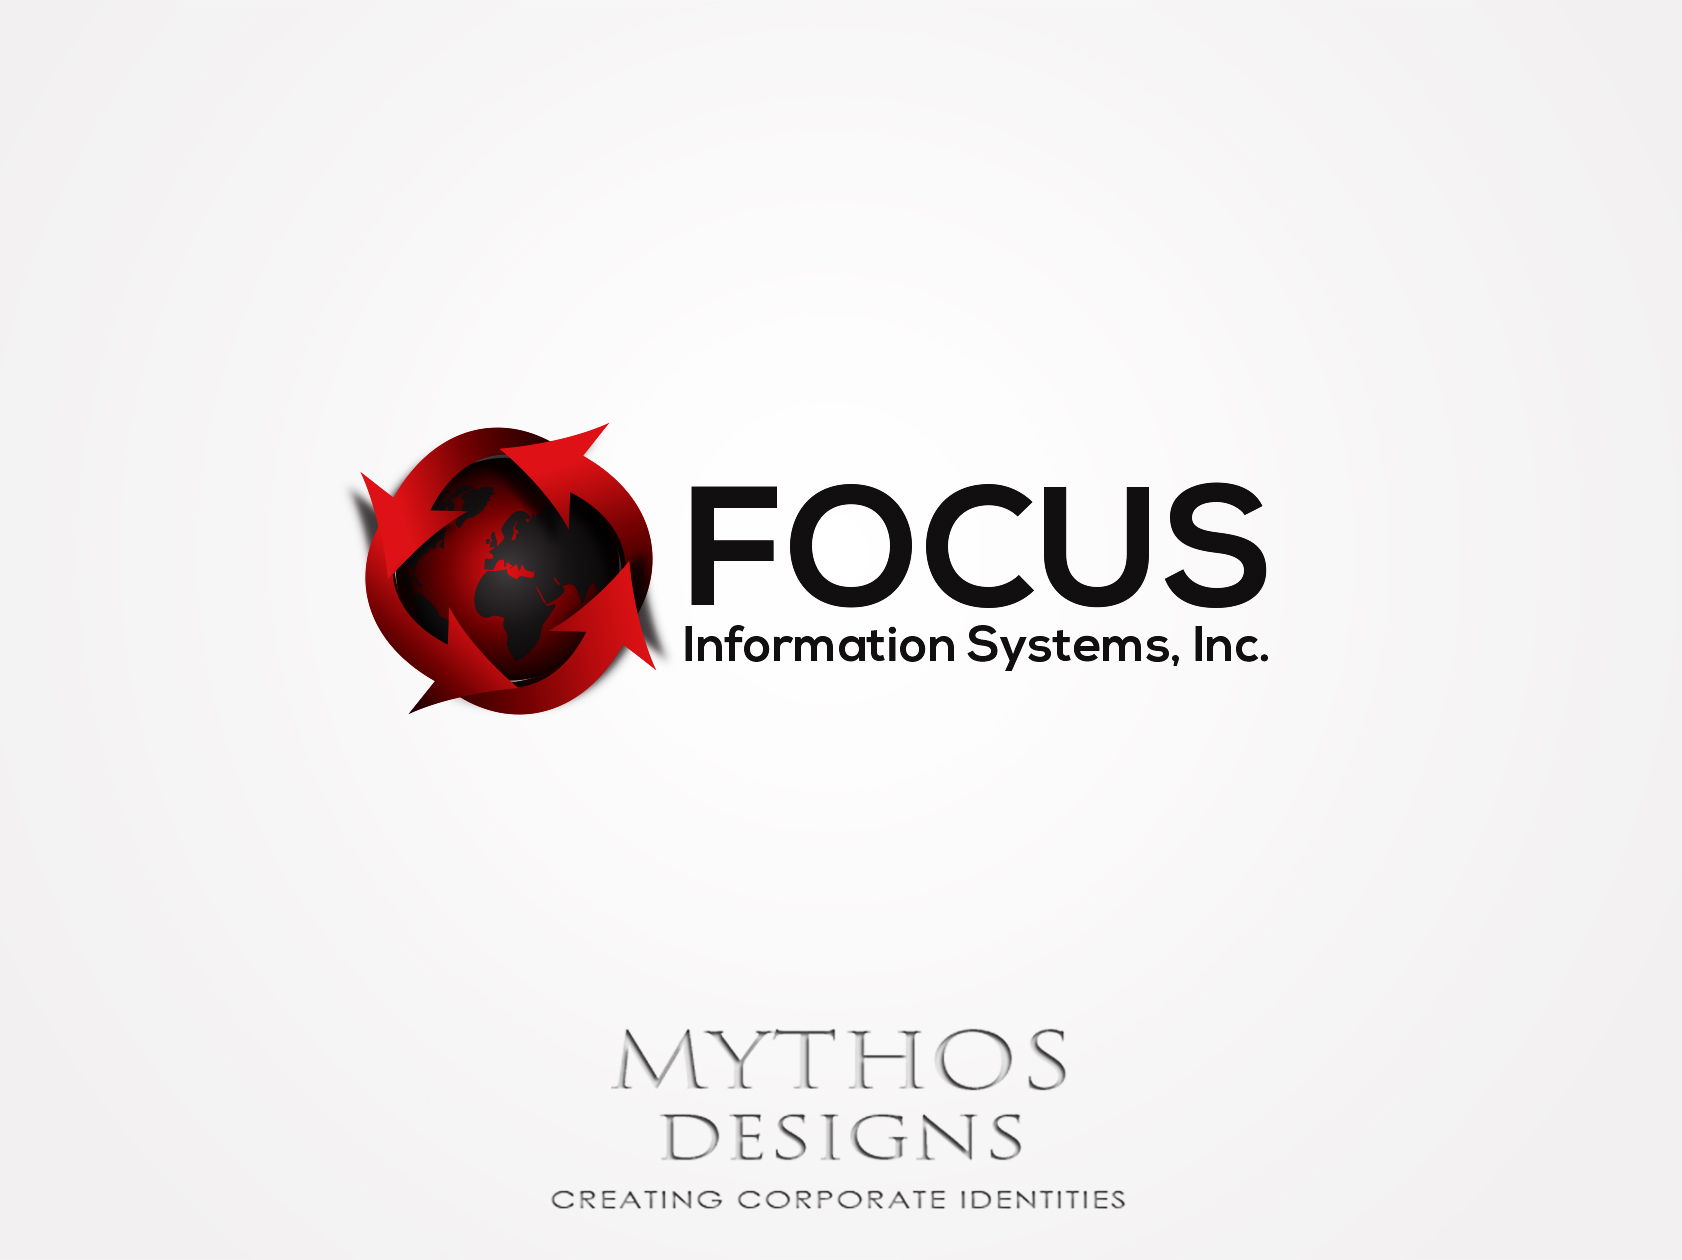 Logo Design by Mythos Designs - Entry No. 44 in the Logo Design Contest Artistic Logo Design for Focus Information Systems, Inc..